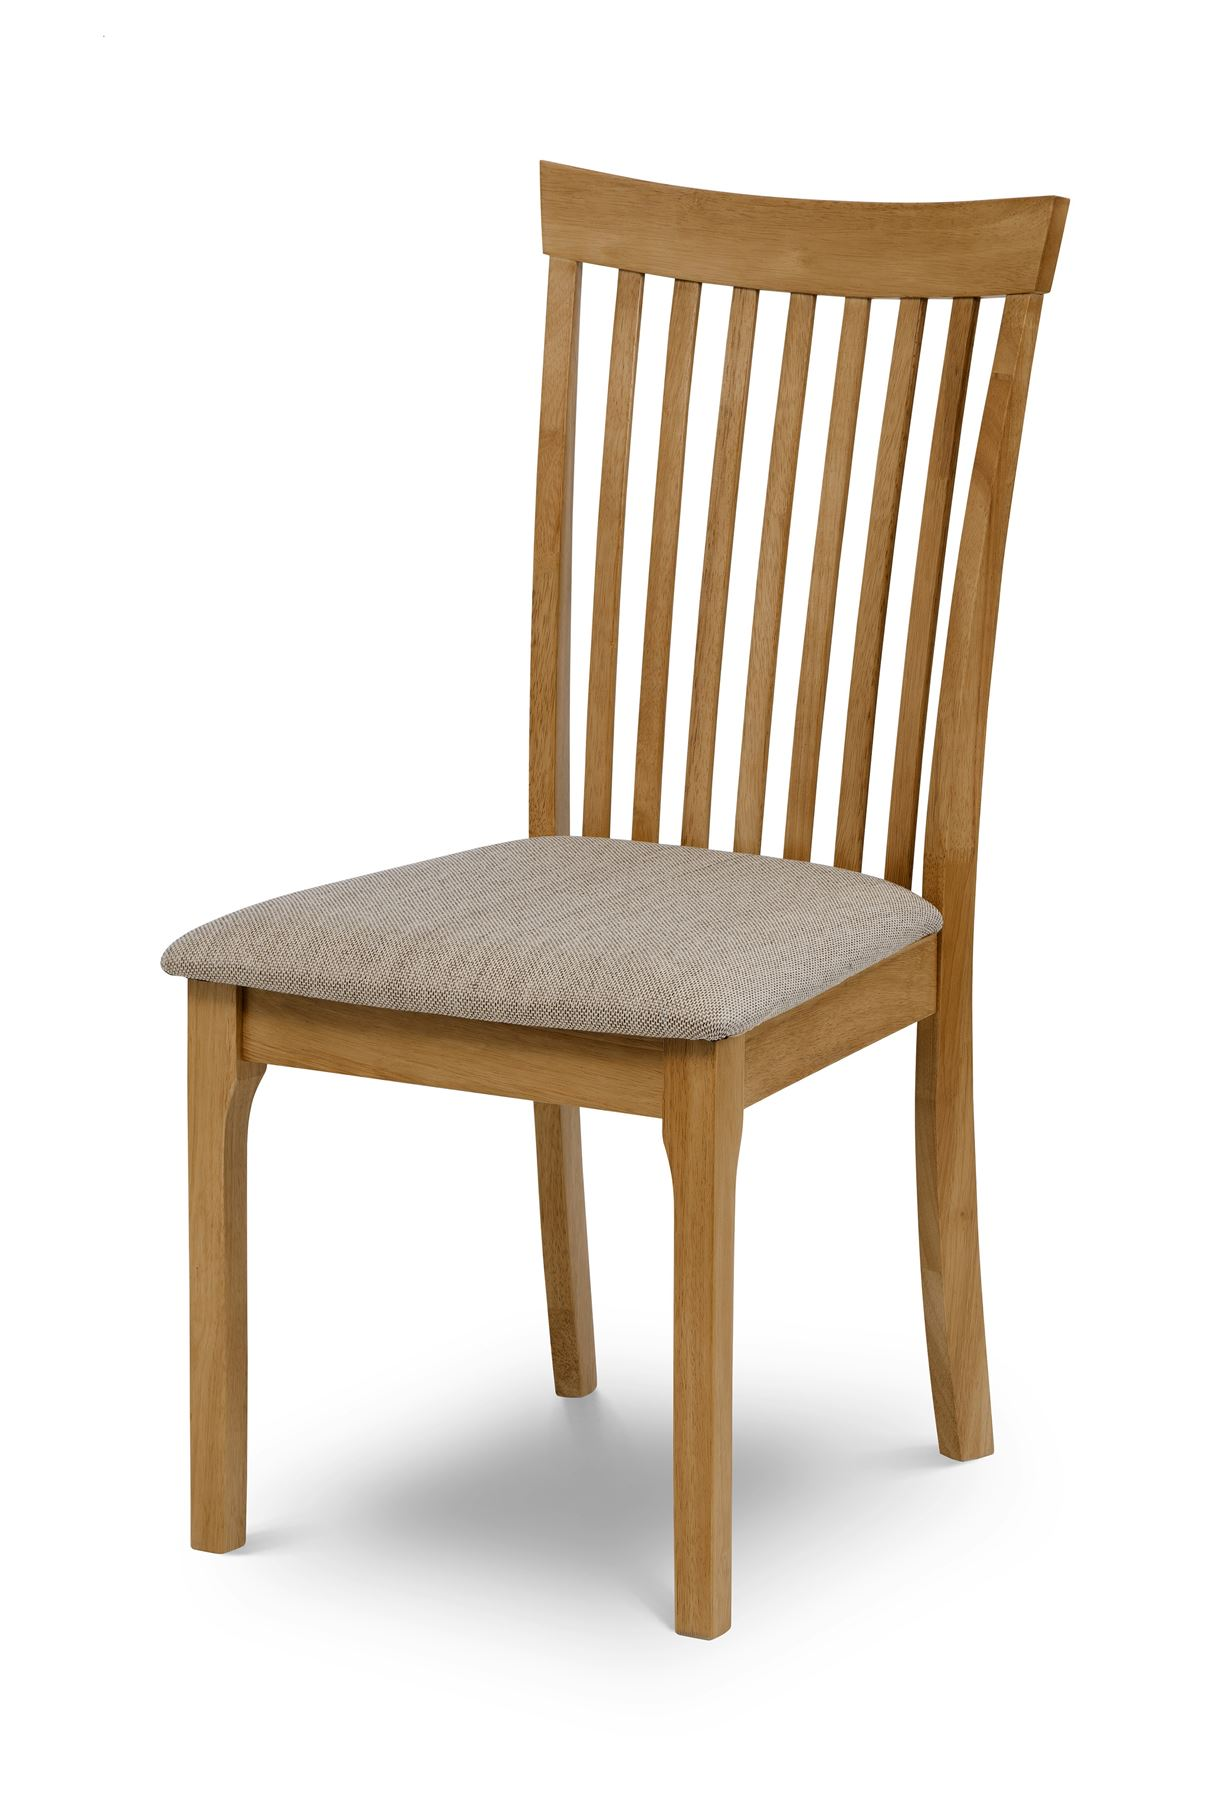 Julian Bowen Ibsen Light Oak Solid Wood Dining Chair with Padded Fabric Seat